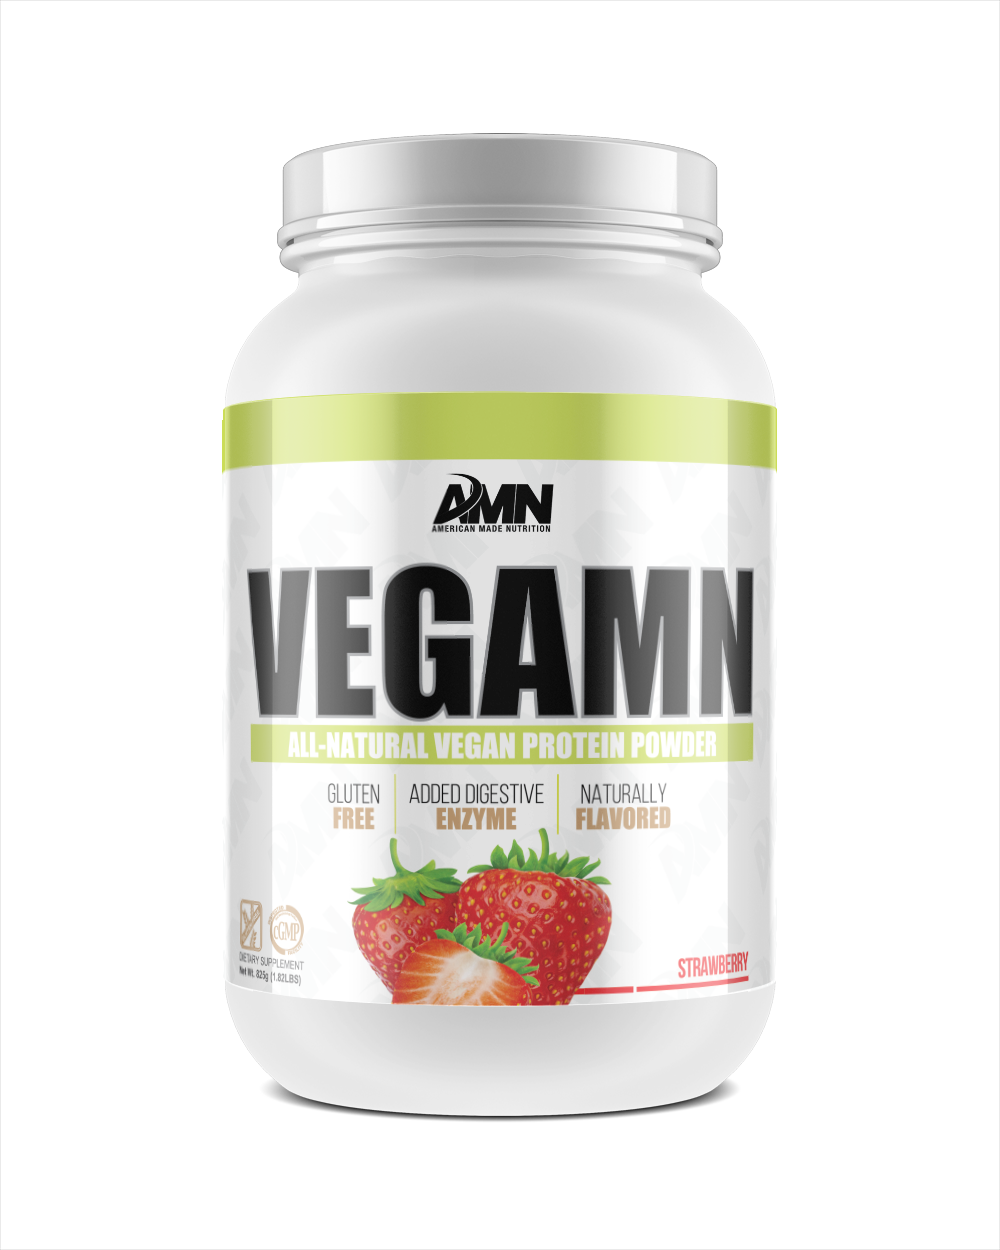 VEGAMN | All-Natural Vegan Protein Powder